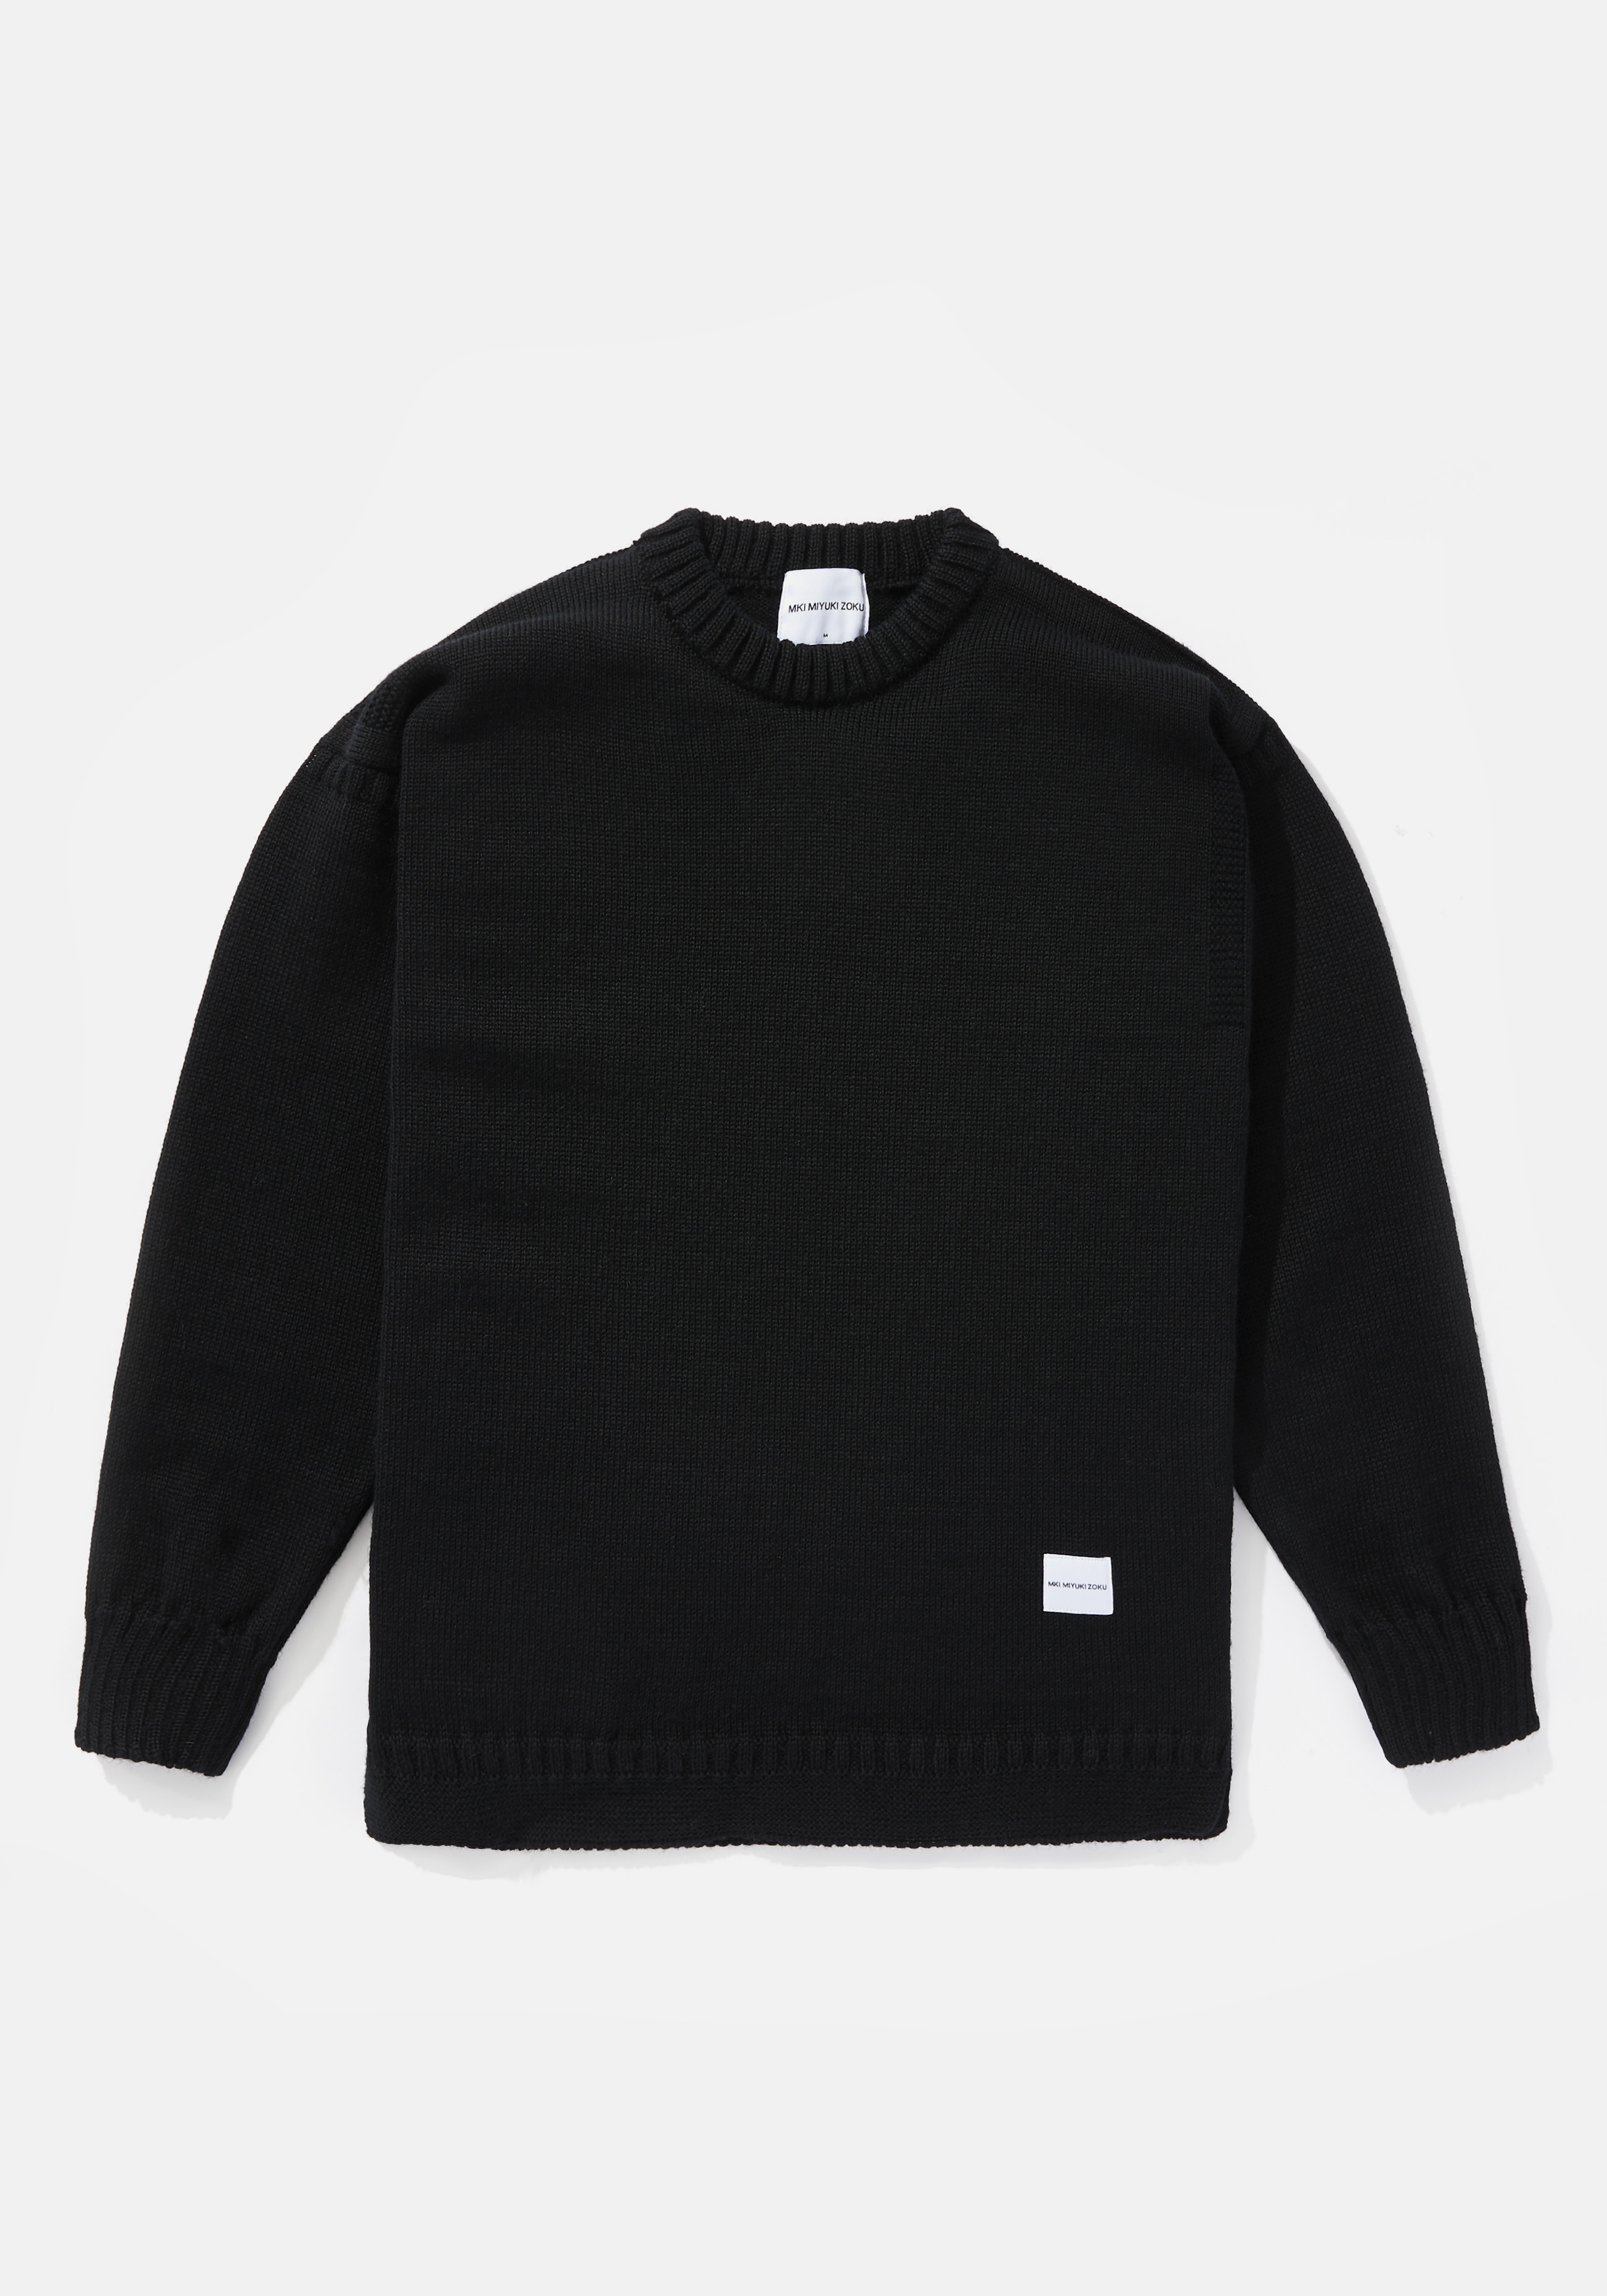 mki crew knit sweater 1